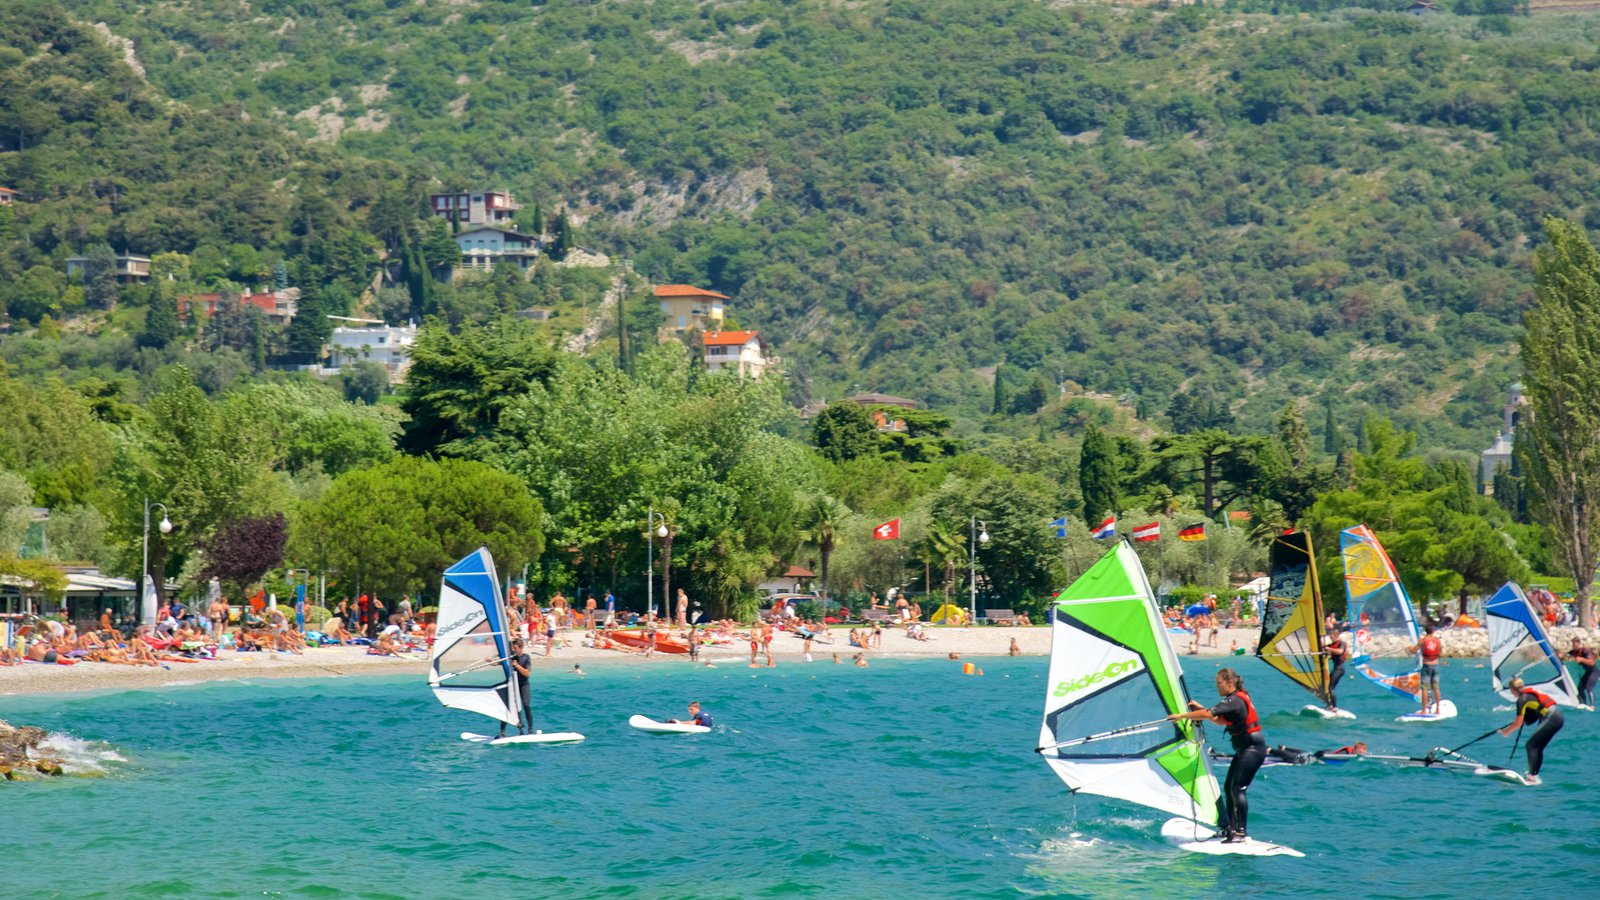 Nago-Torbole featuring general coastal views, windsurfing and a sandy beach